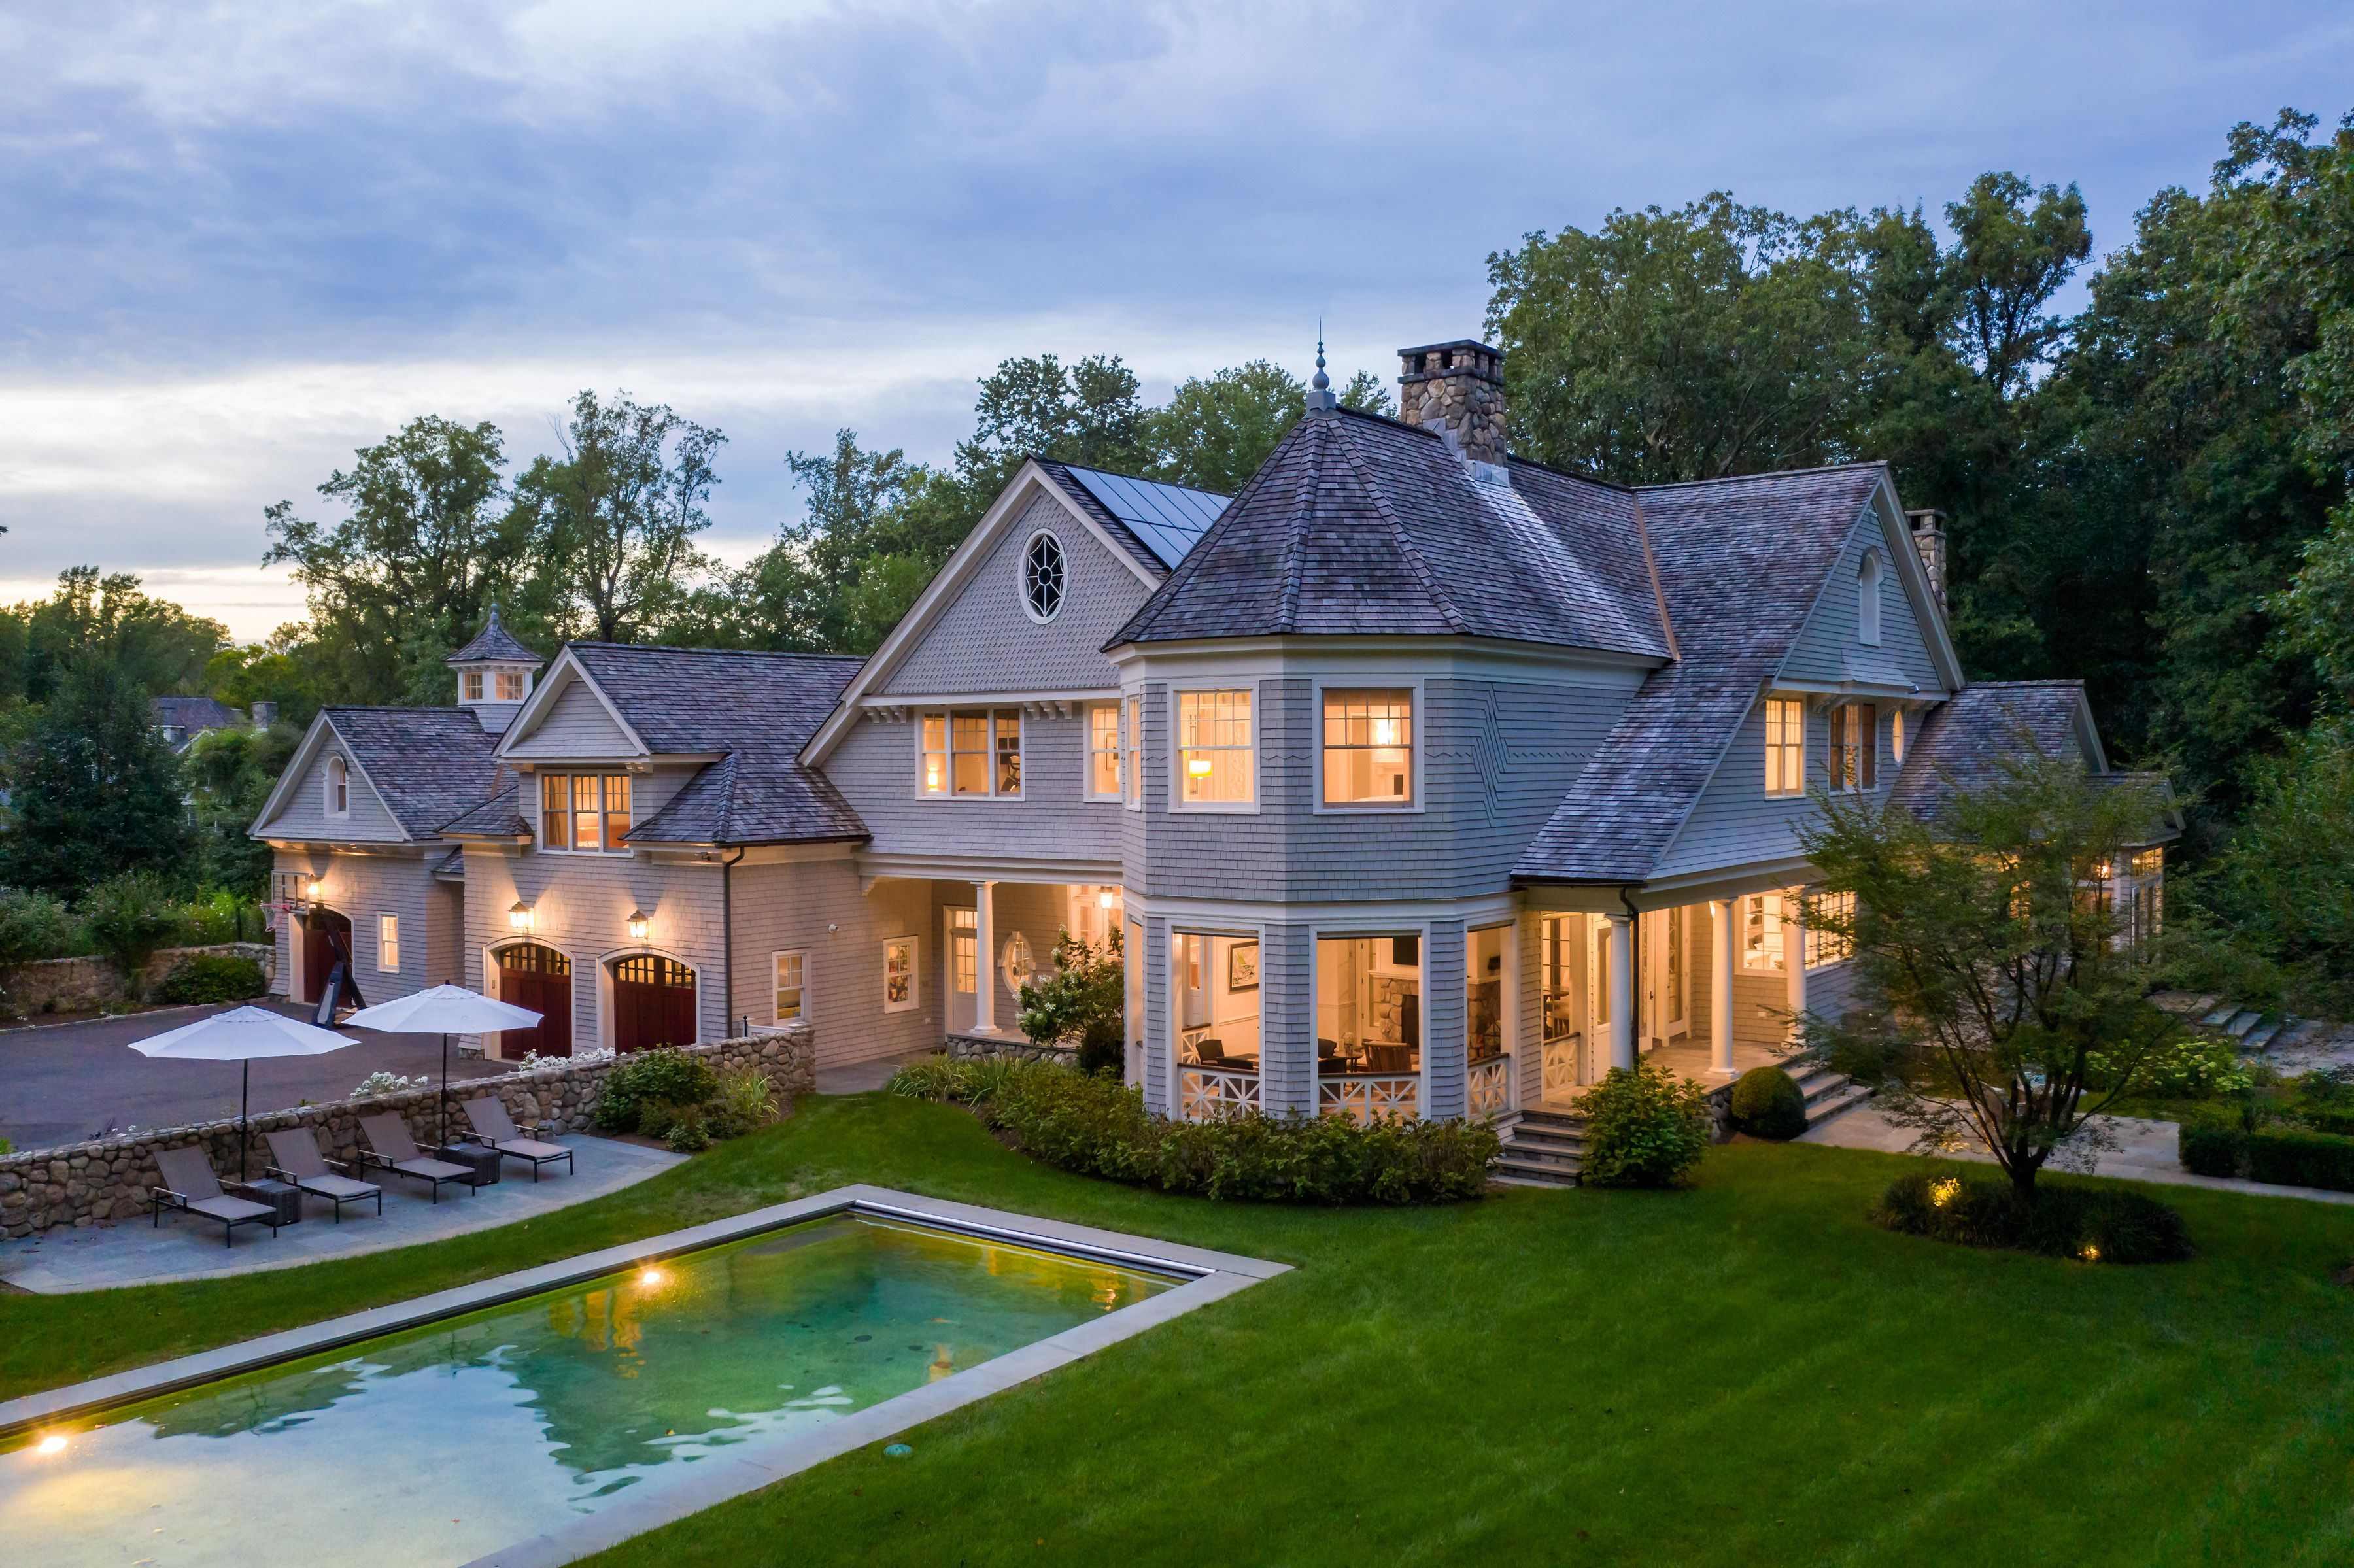 14 Adams Lane New Canaan, CT 06840 - Image 1